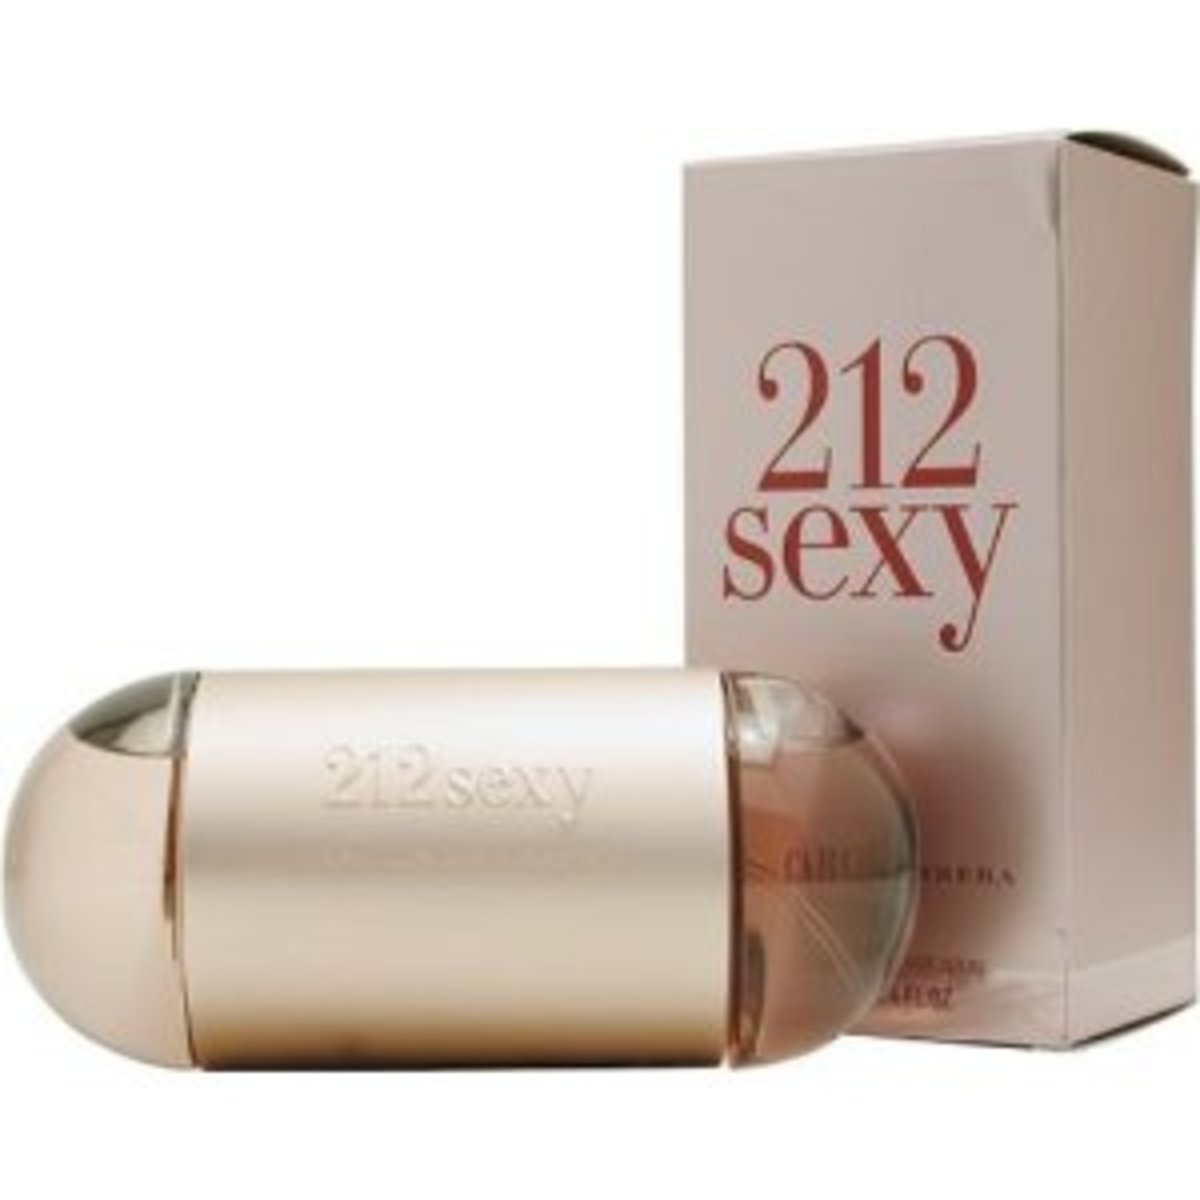 Sexy, top perfumes for women is appropriately named 212 Sexy!